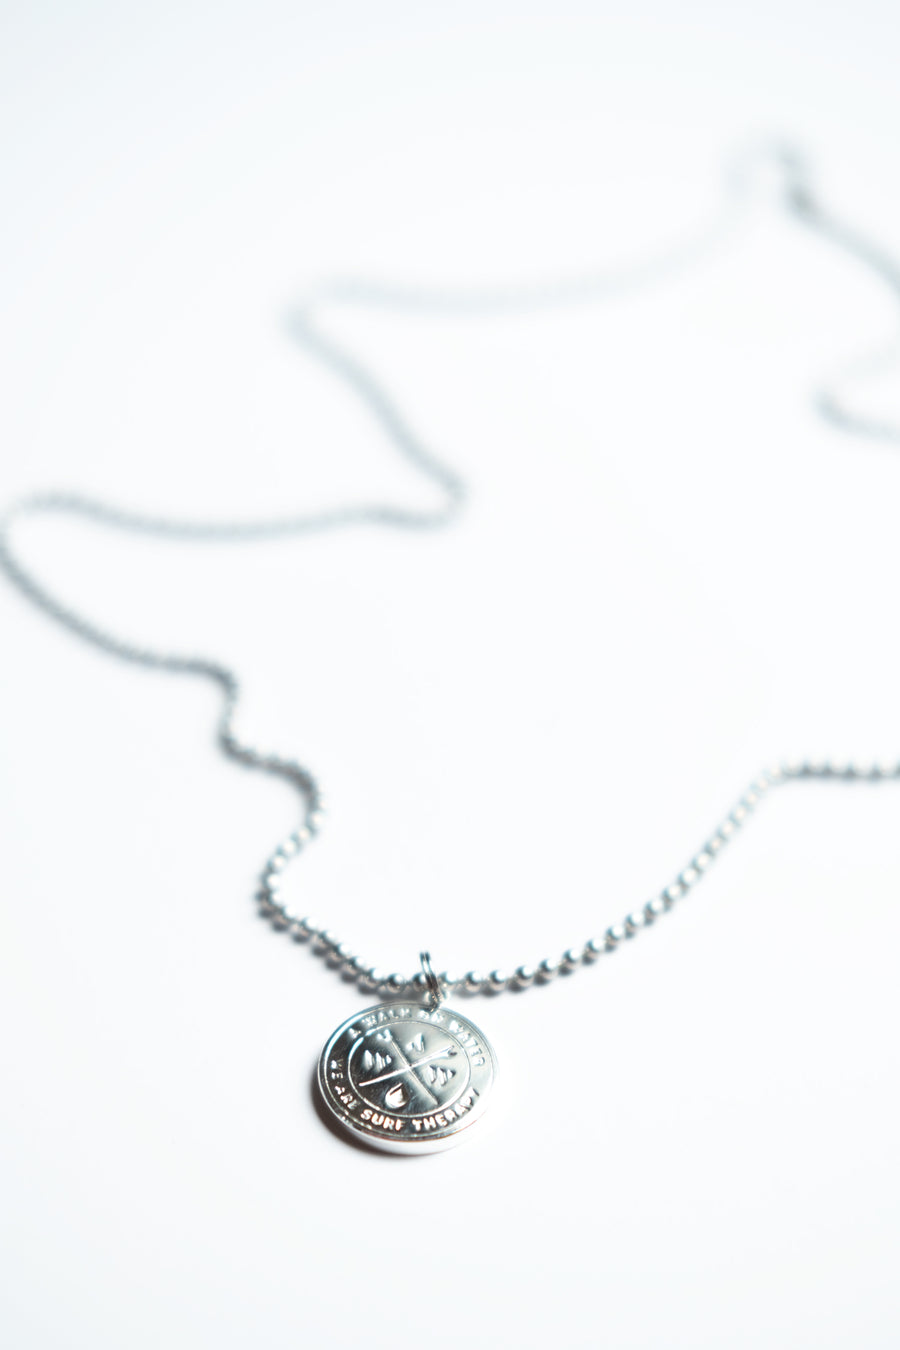 AWOW St. Christopher Necklace